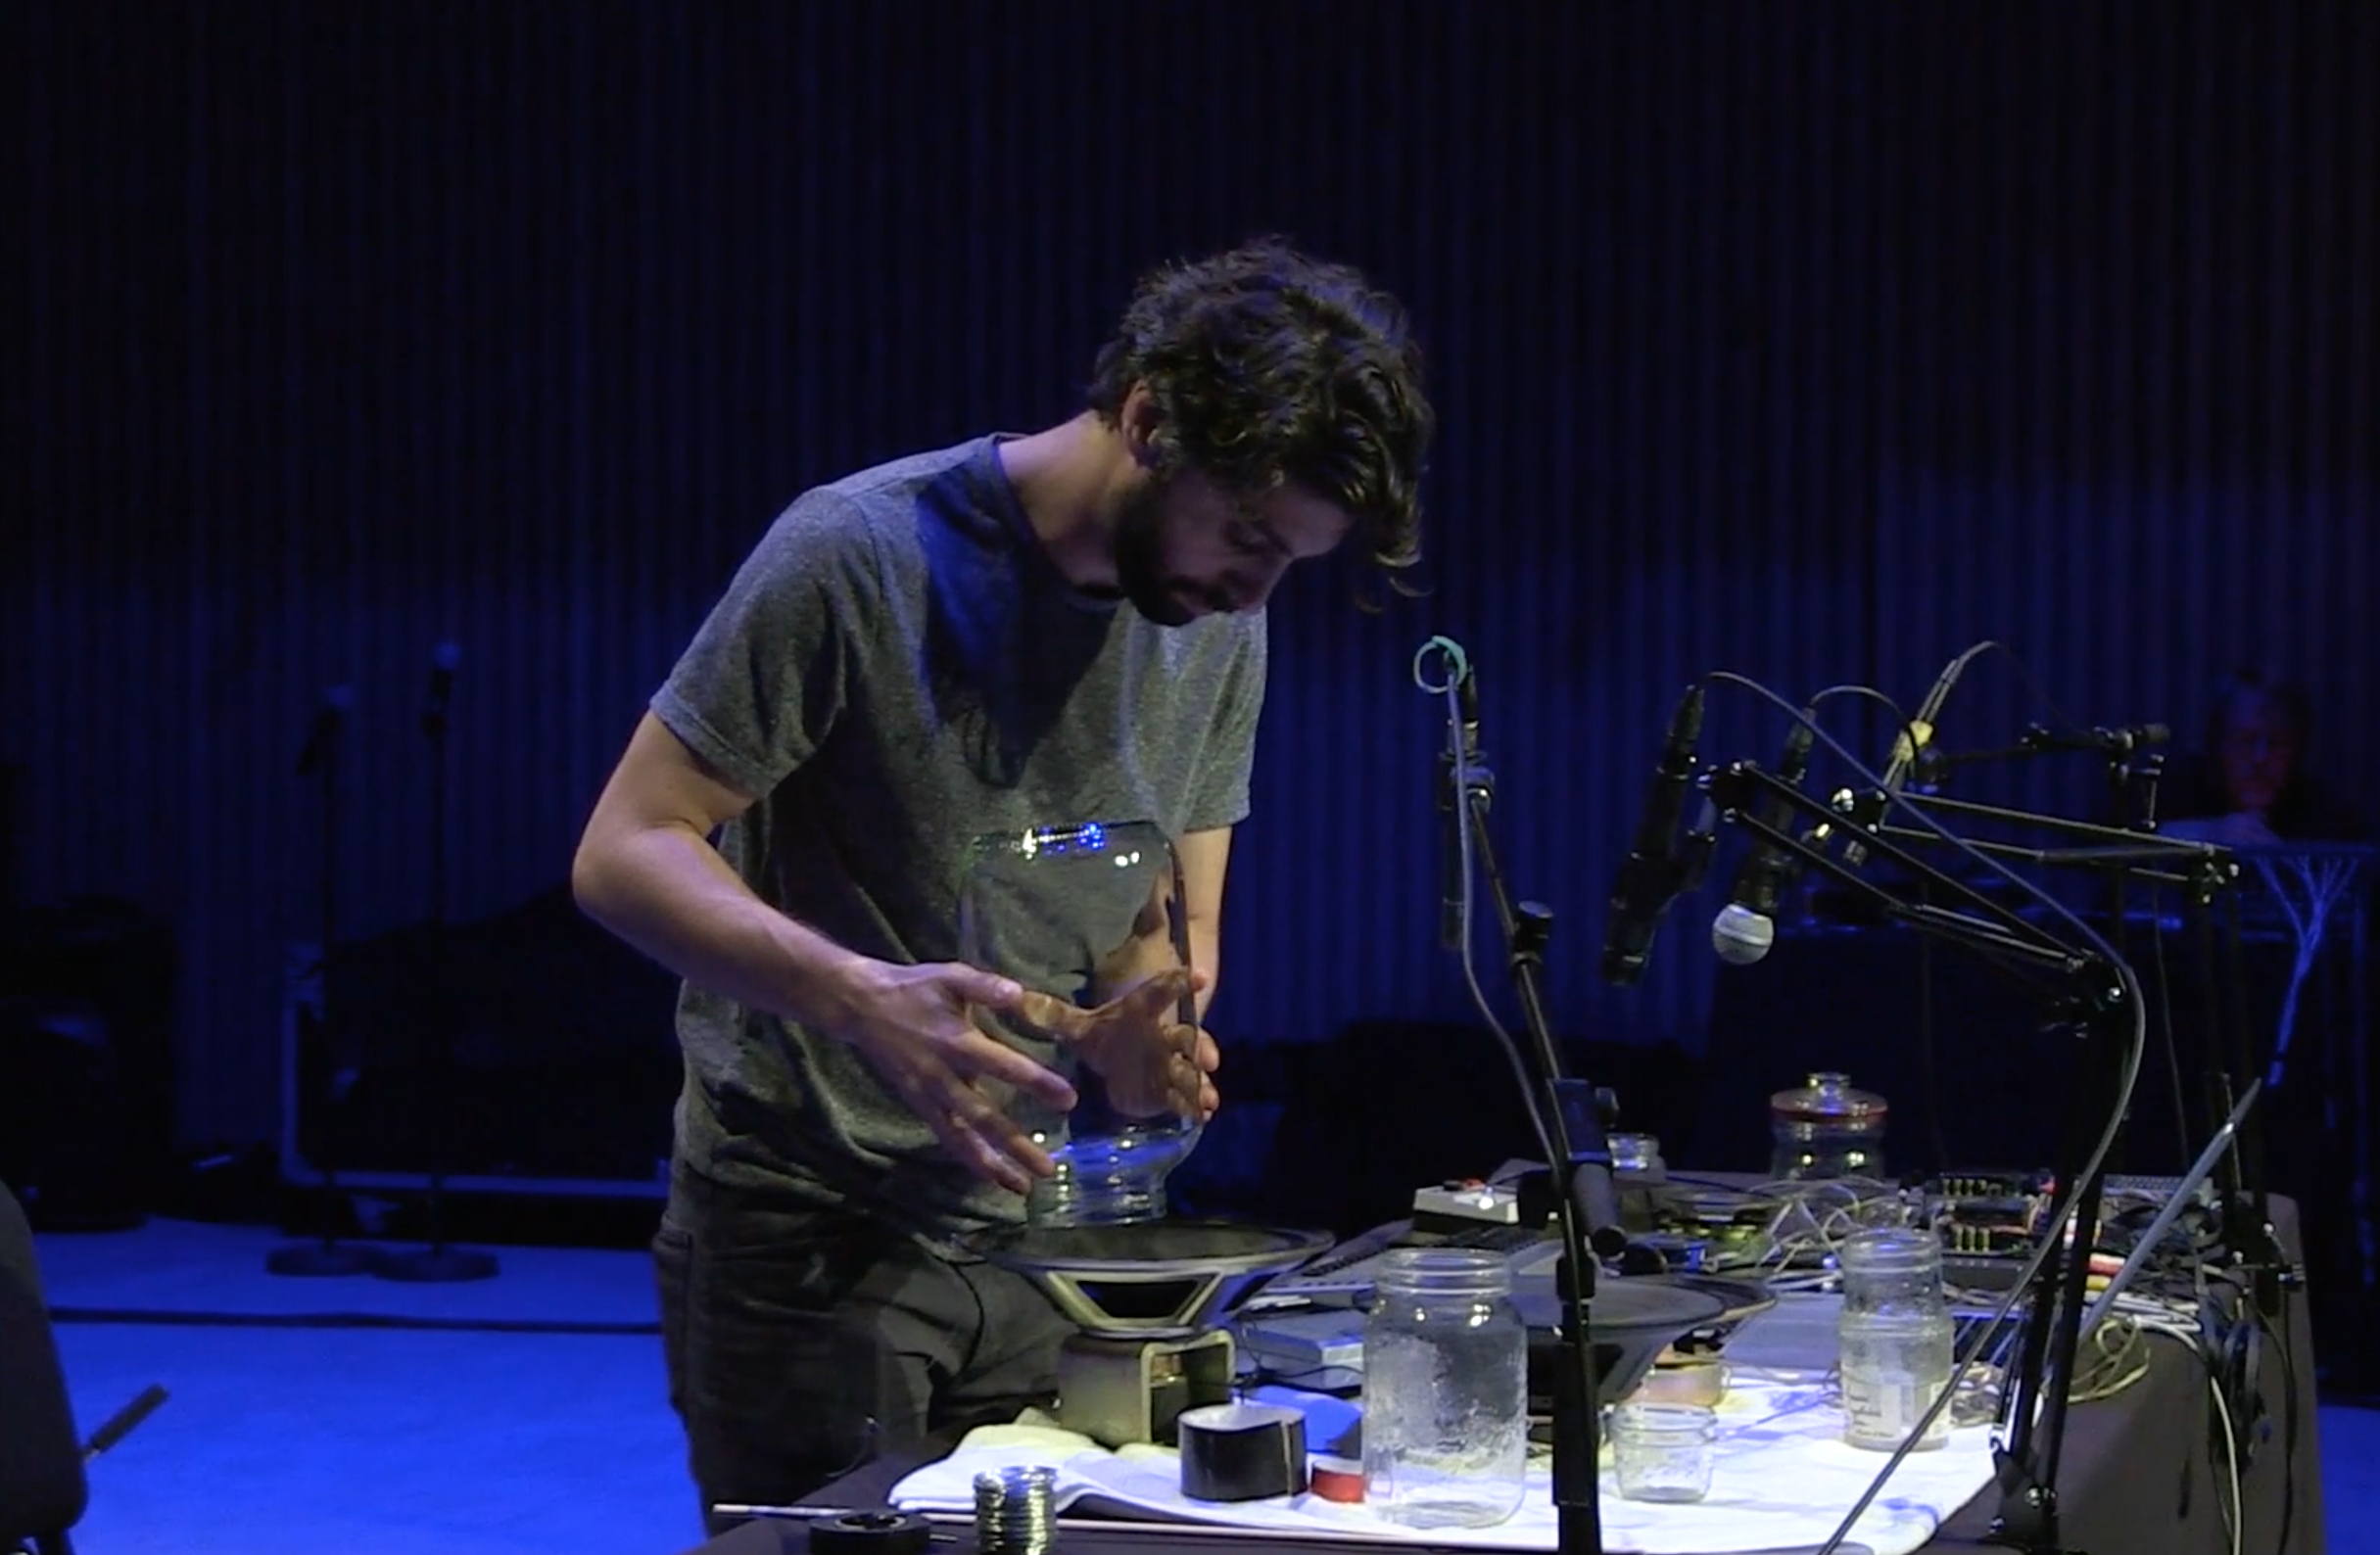 Adam Basanta uses a jar for preparing a loudspeaker.